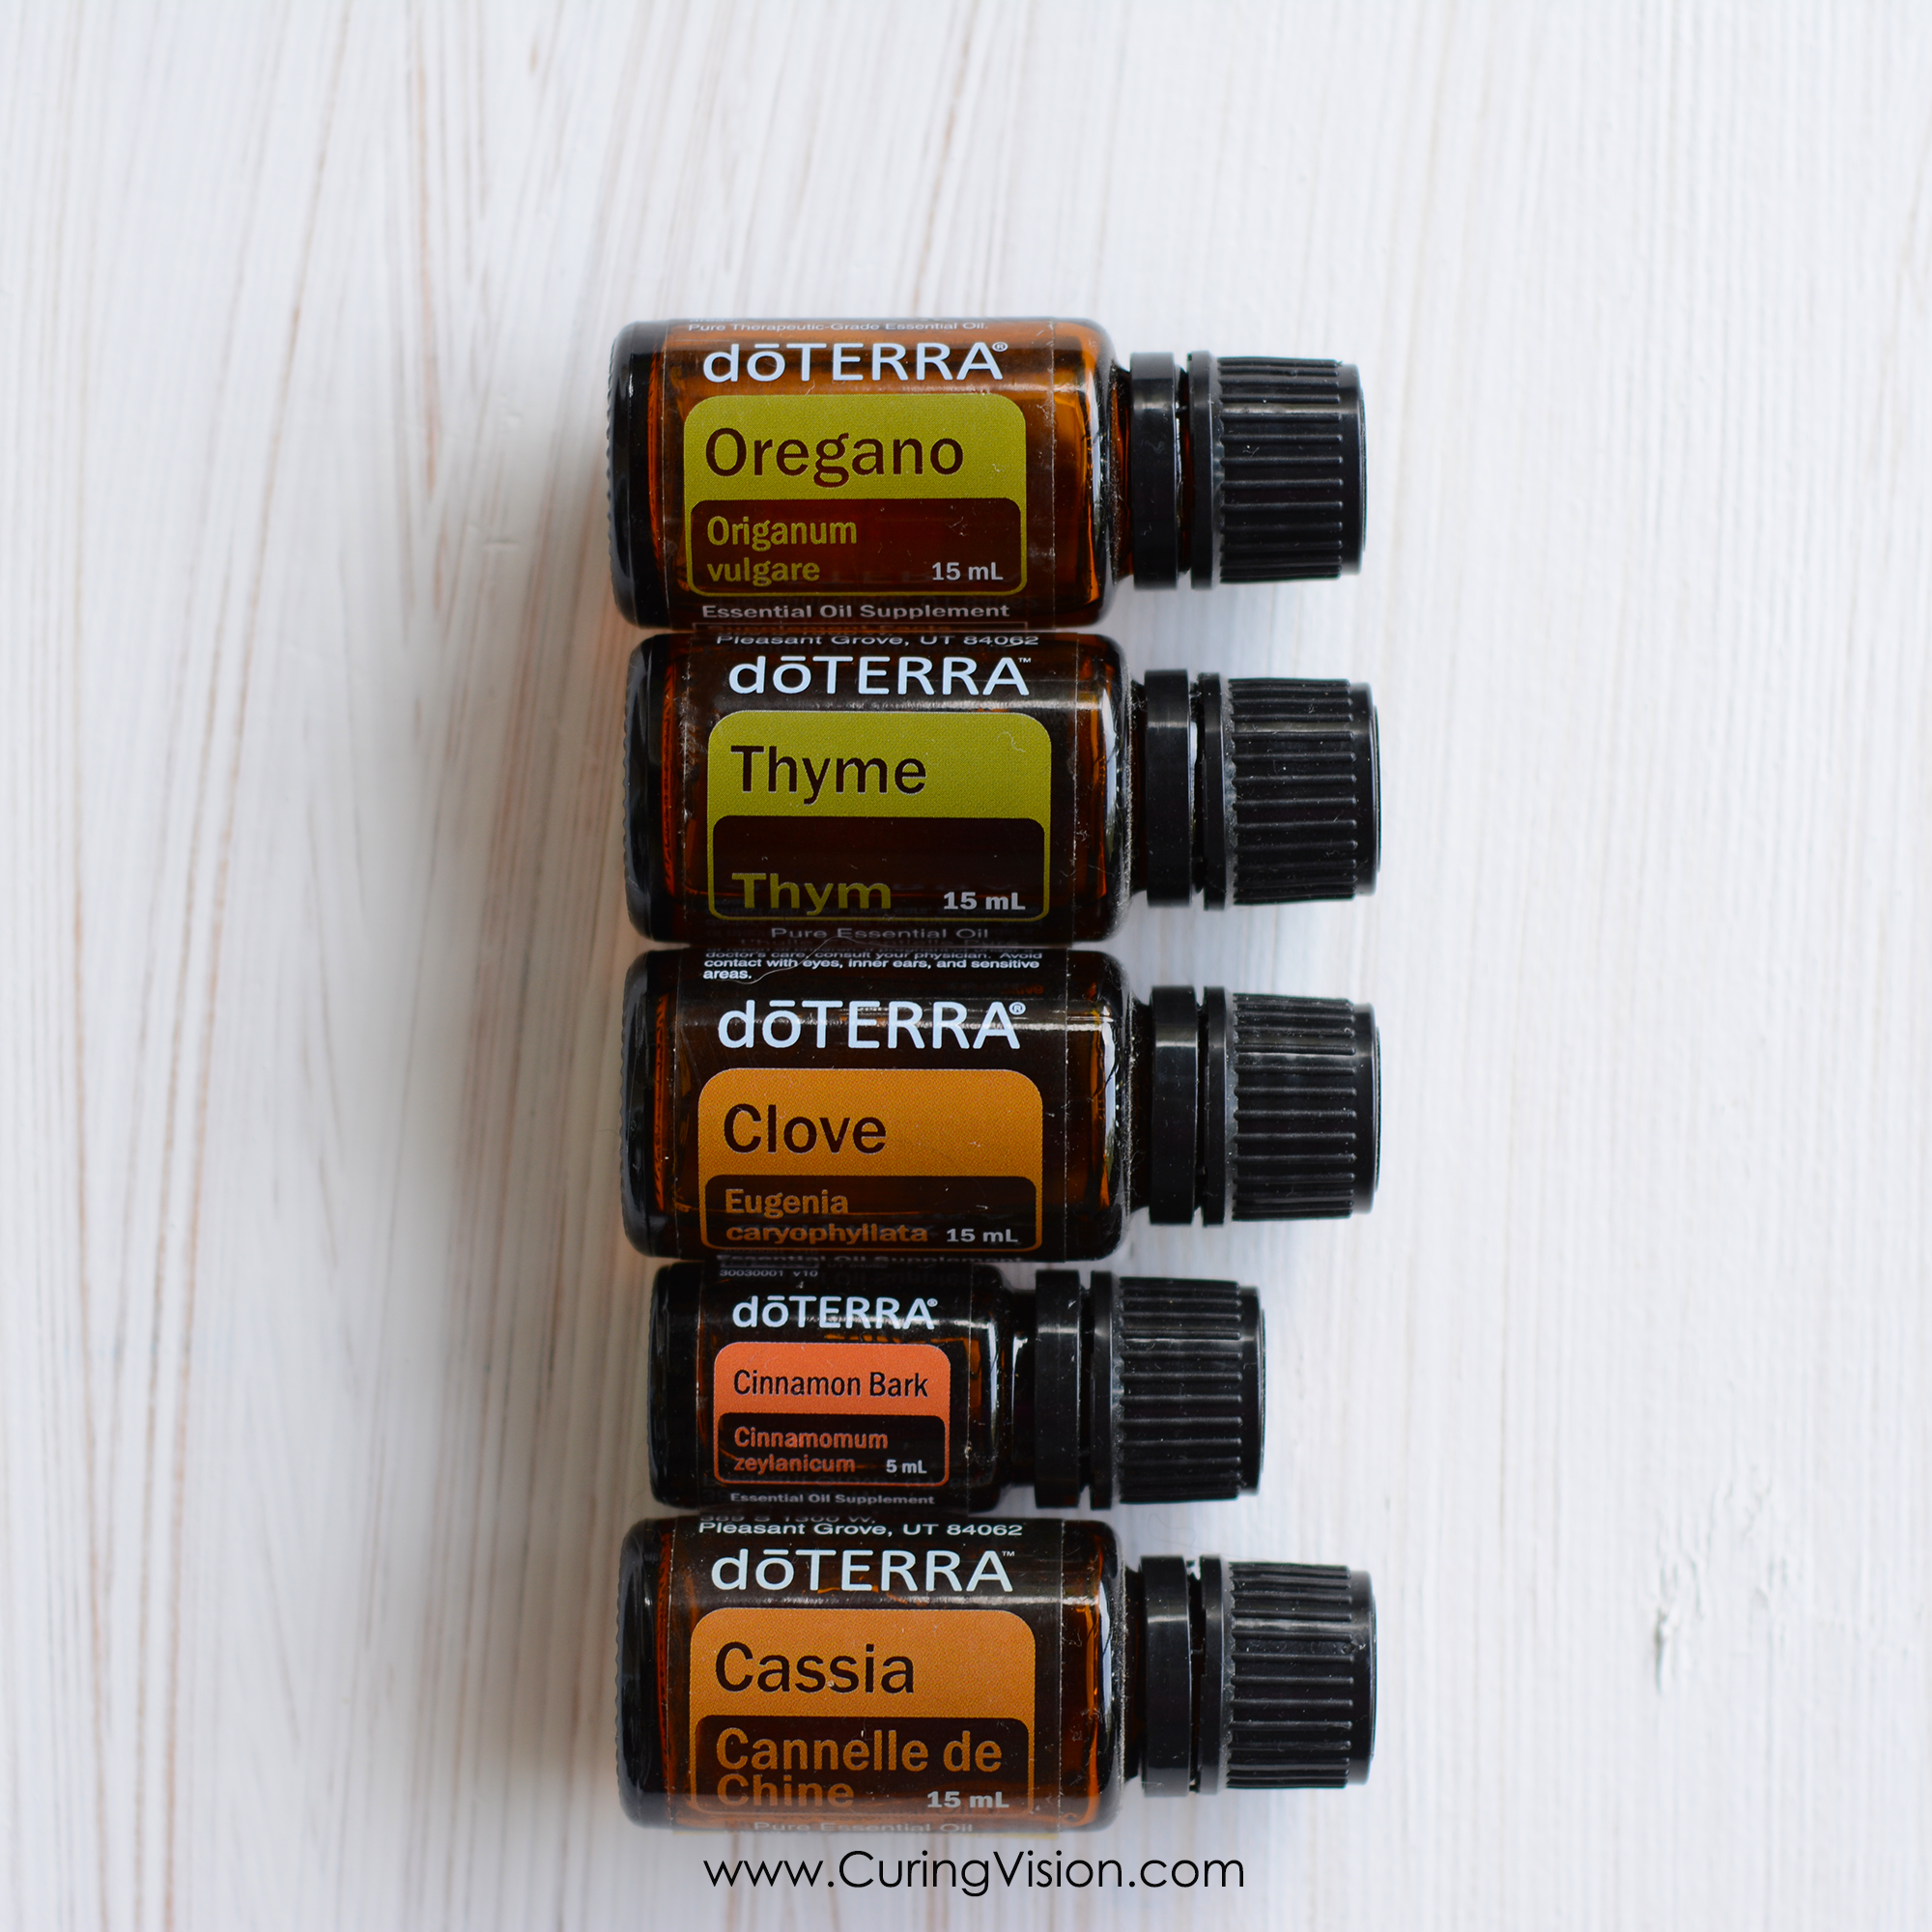 What are Hot Essential Oils? Click to learn about what hot essential oils are and how to use them best, and how to purchase doTERRA essential oils with a 25% discount.